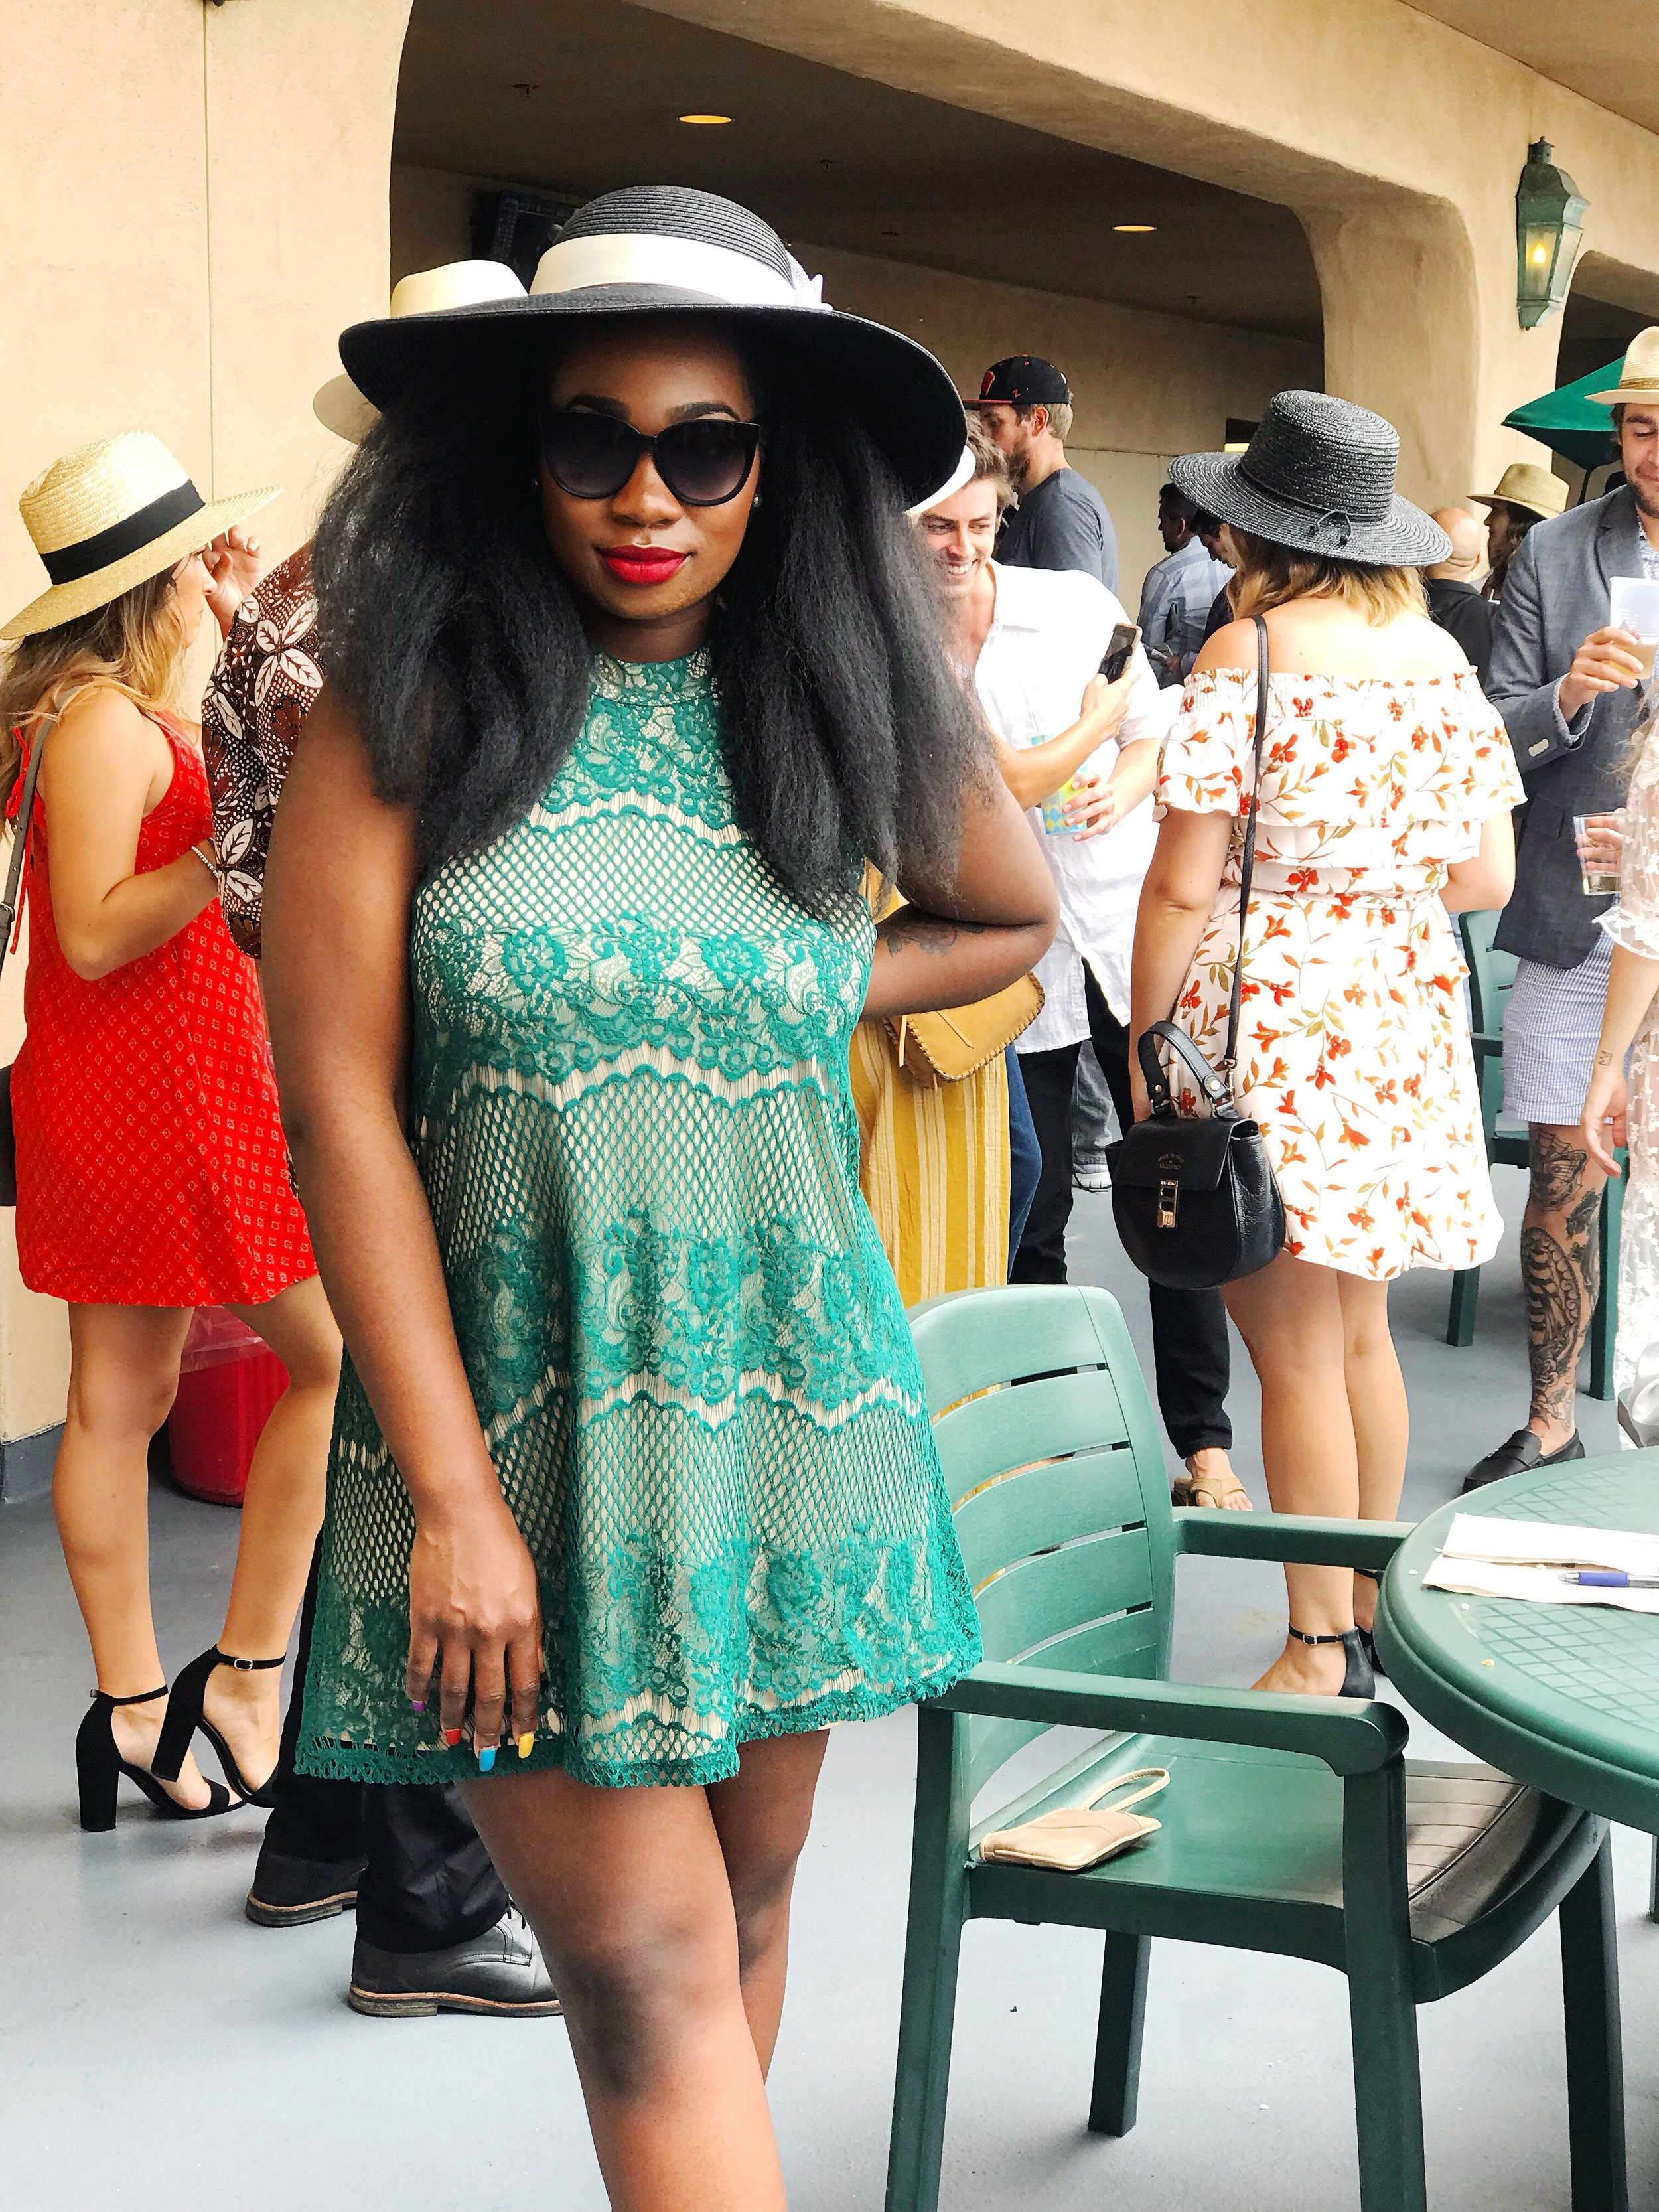 Image: Femi on Opening Day at Del Mar